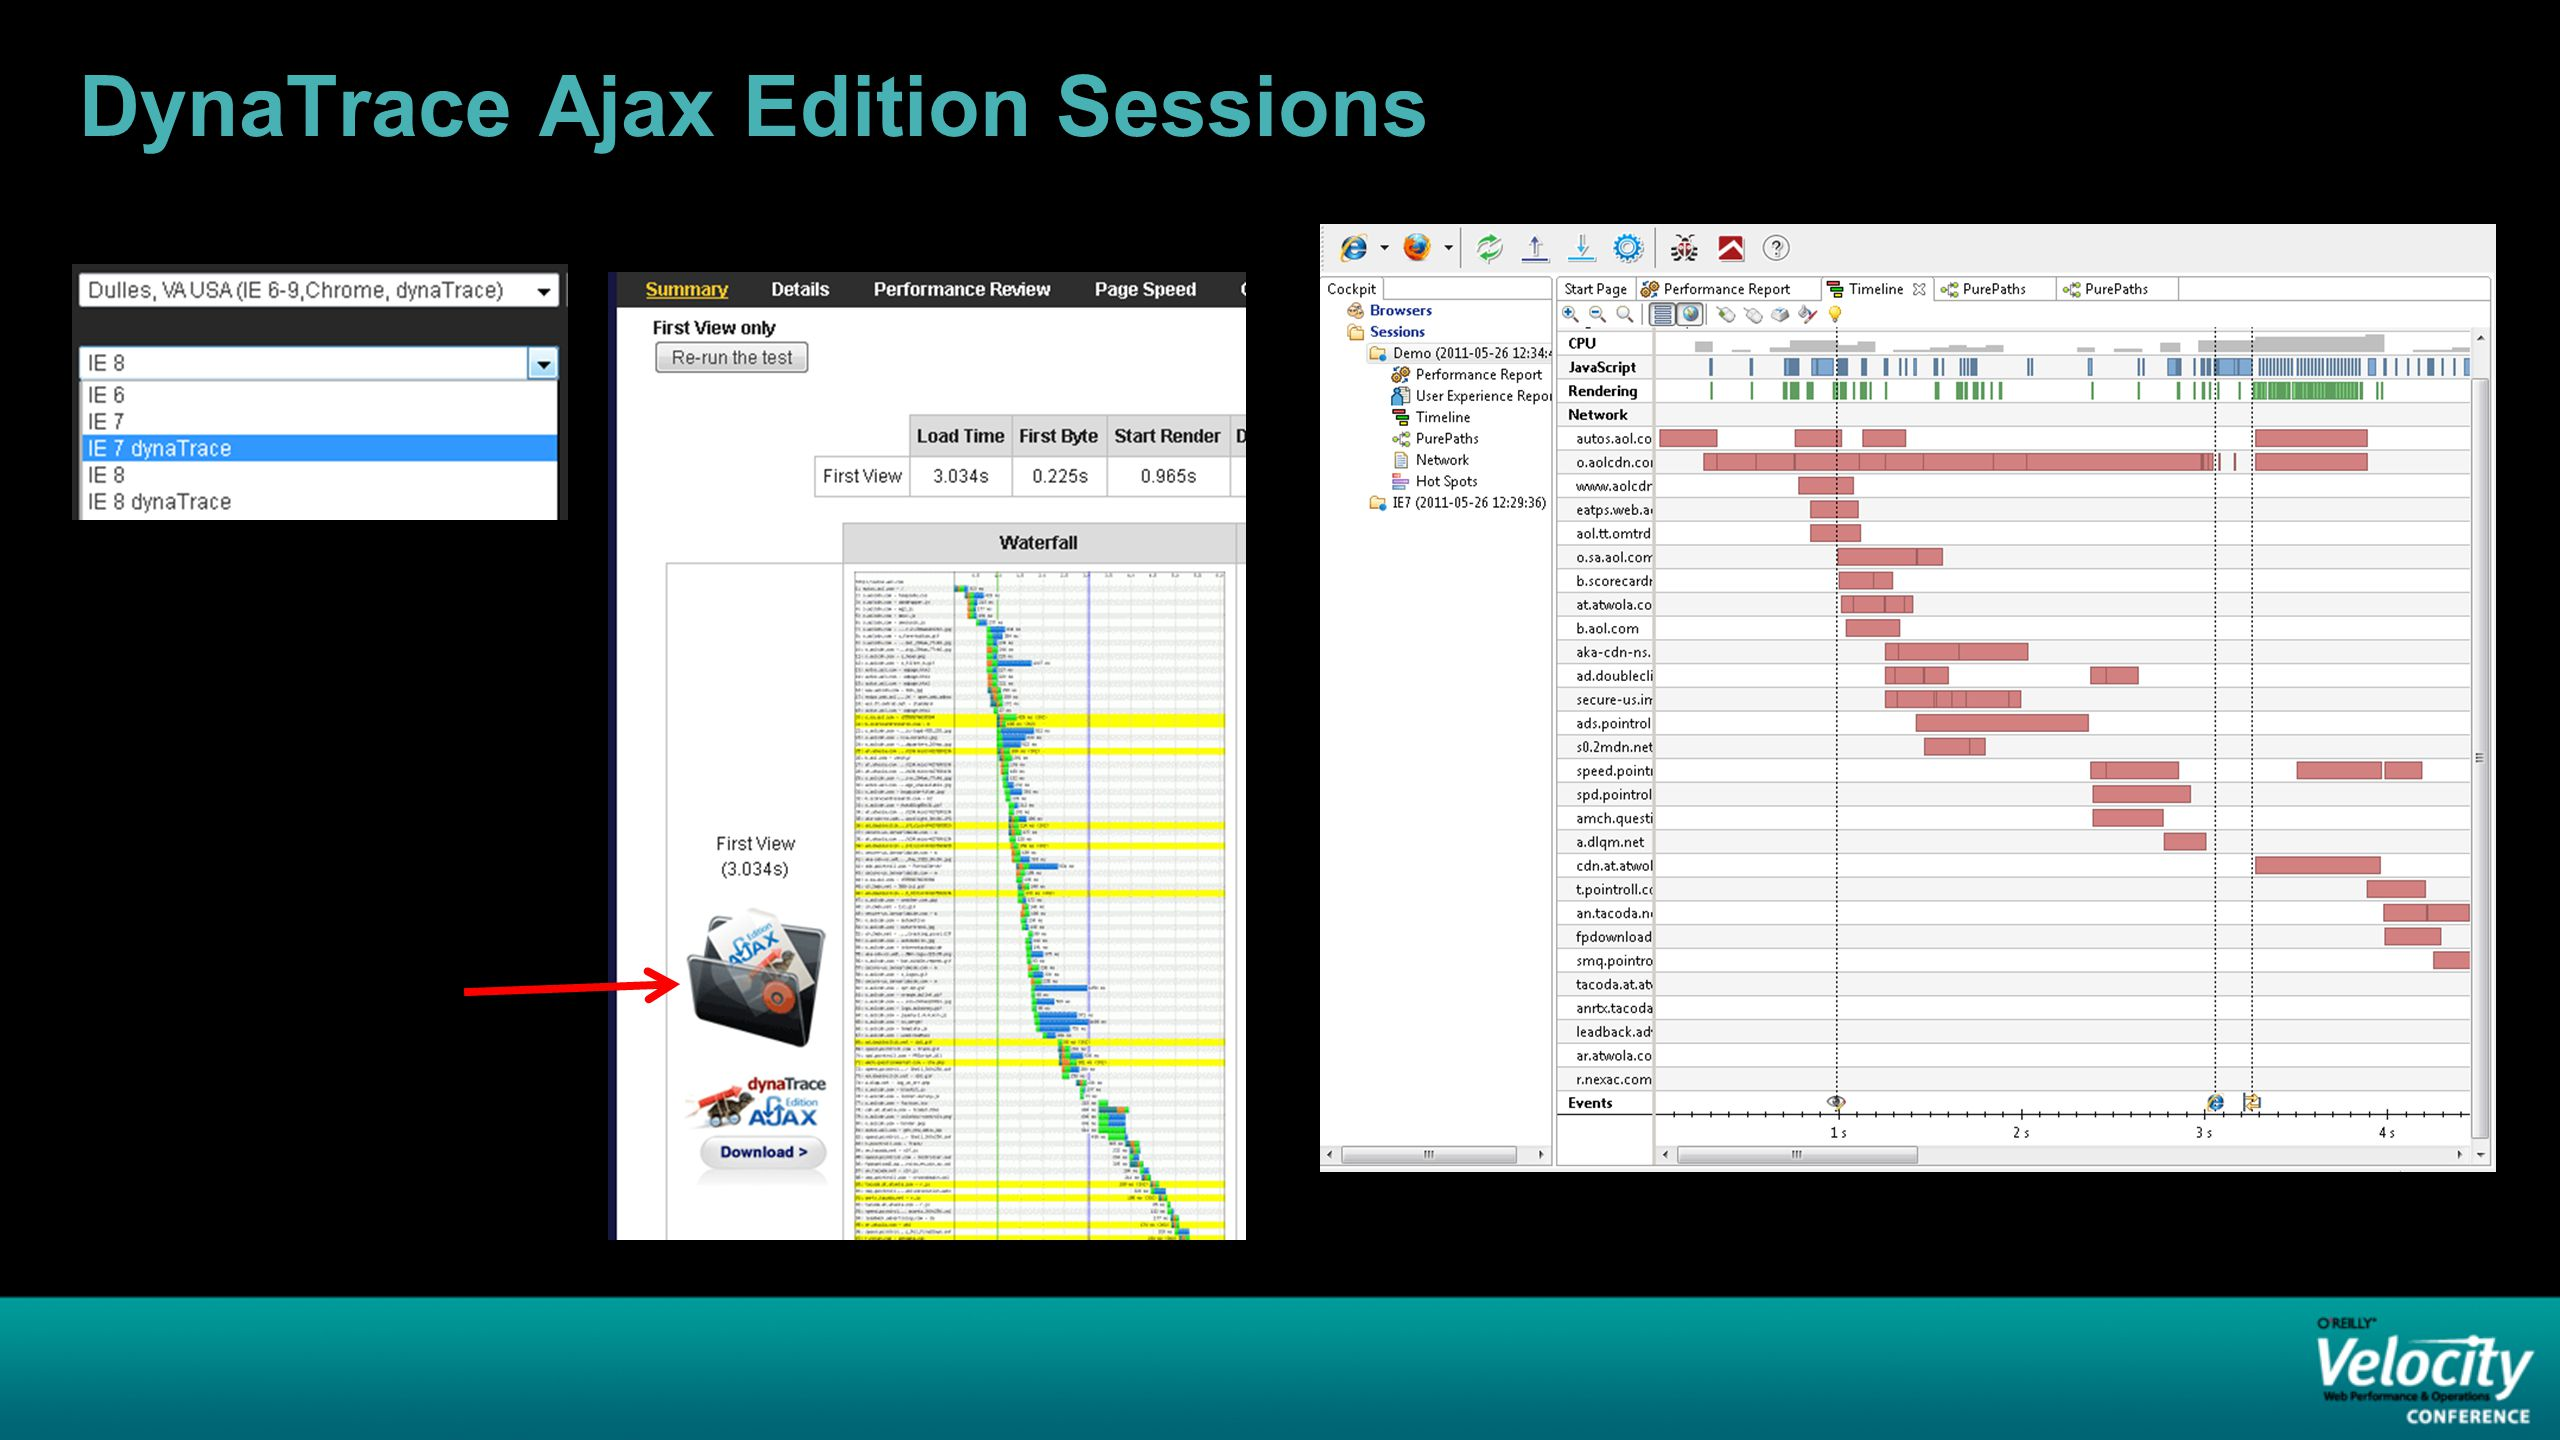 DynaTrace Ajax Edition Sessions